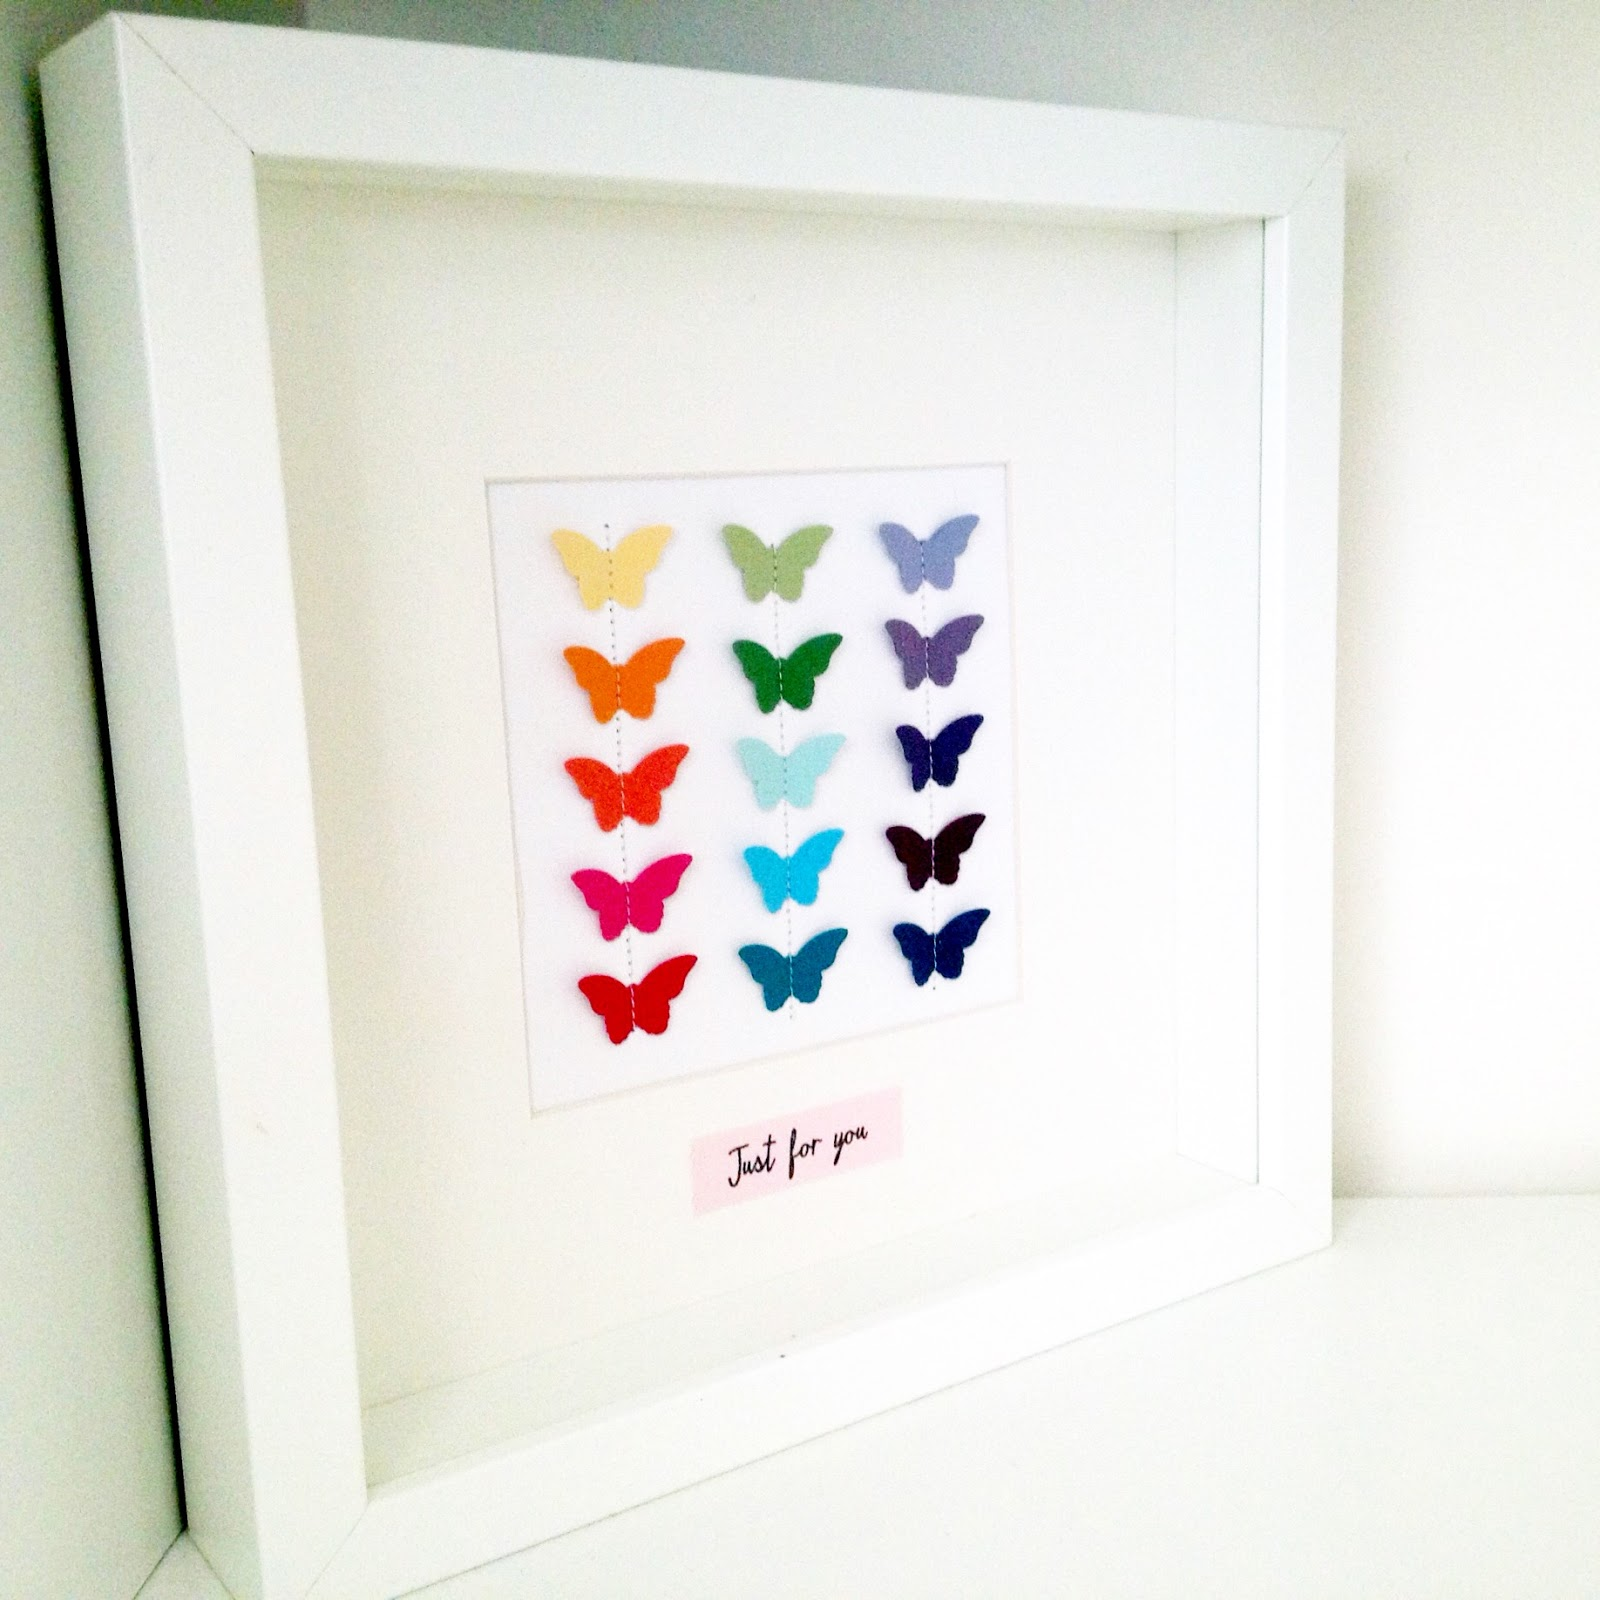 2015 sarah lancaster independent demonstrator france uk and europe rainbow of butterflies tutorial jeuxipadfo Choice Image